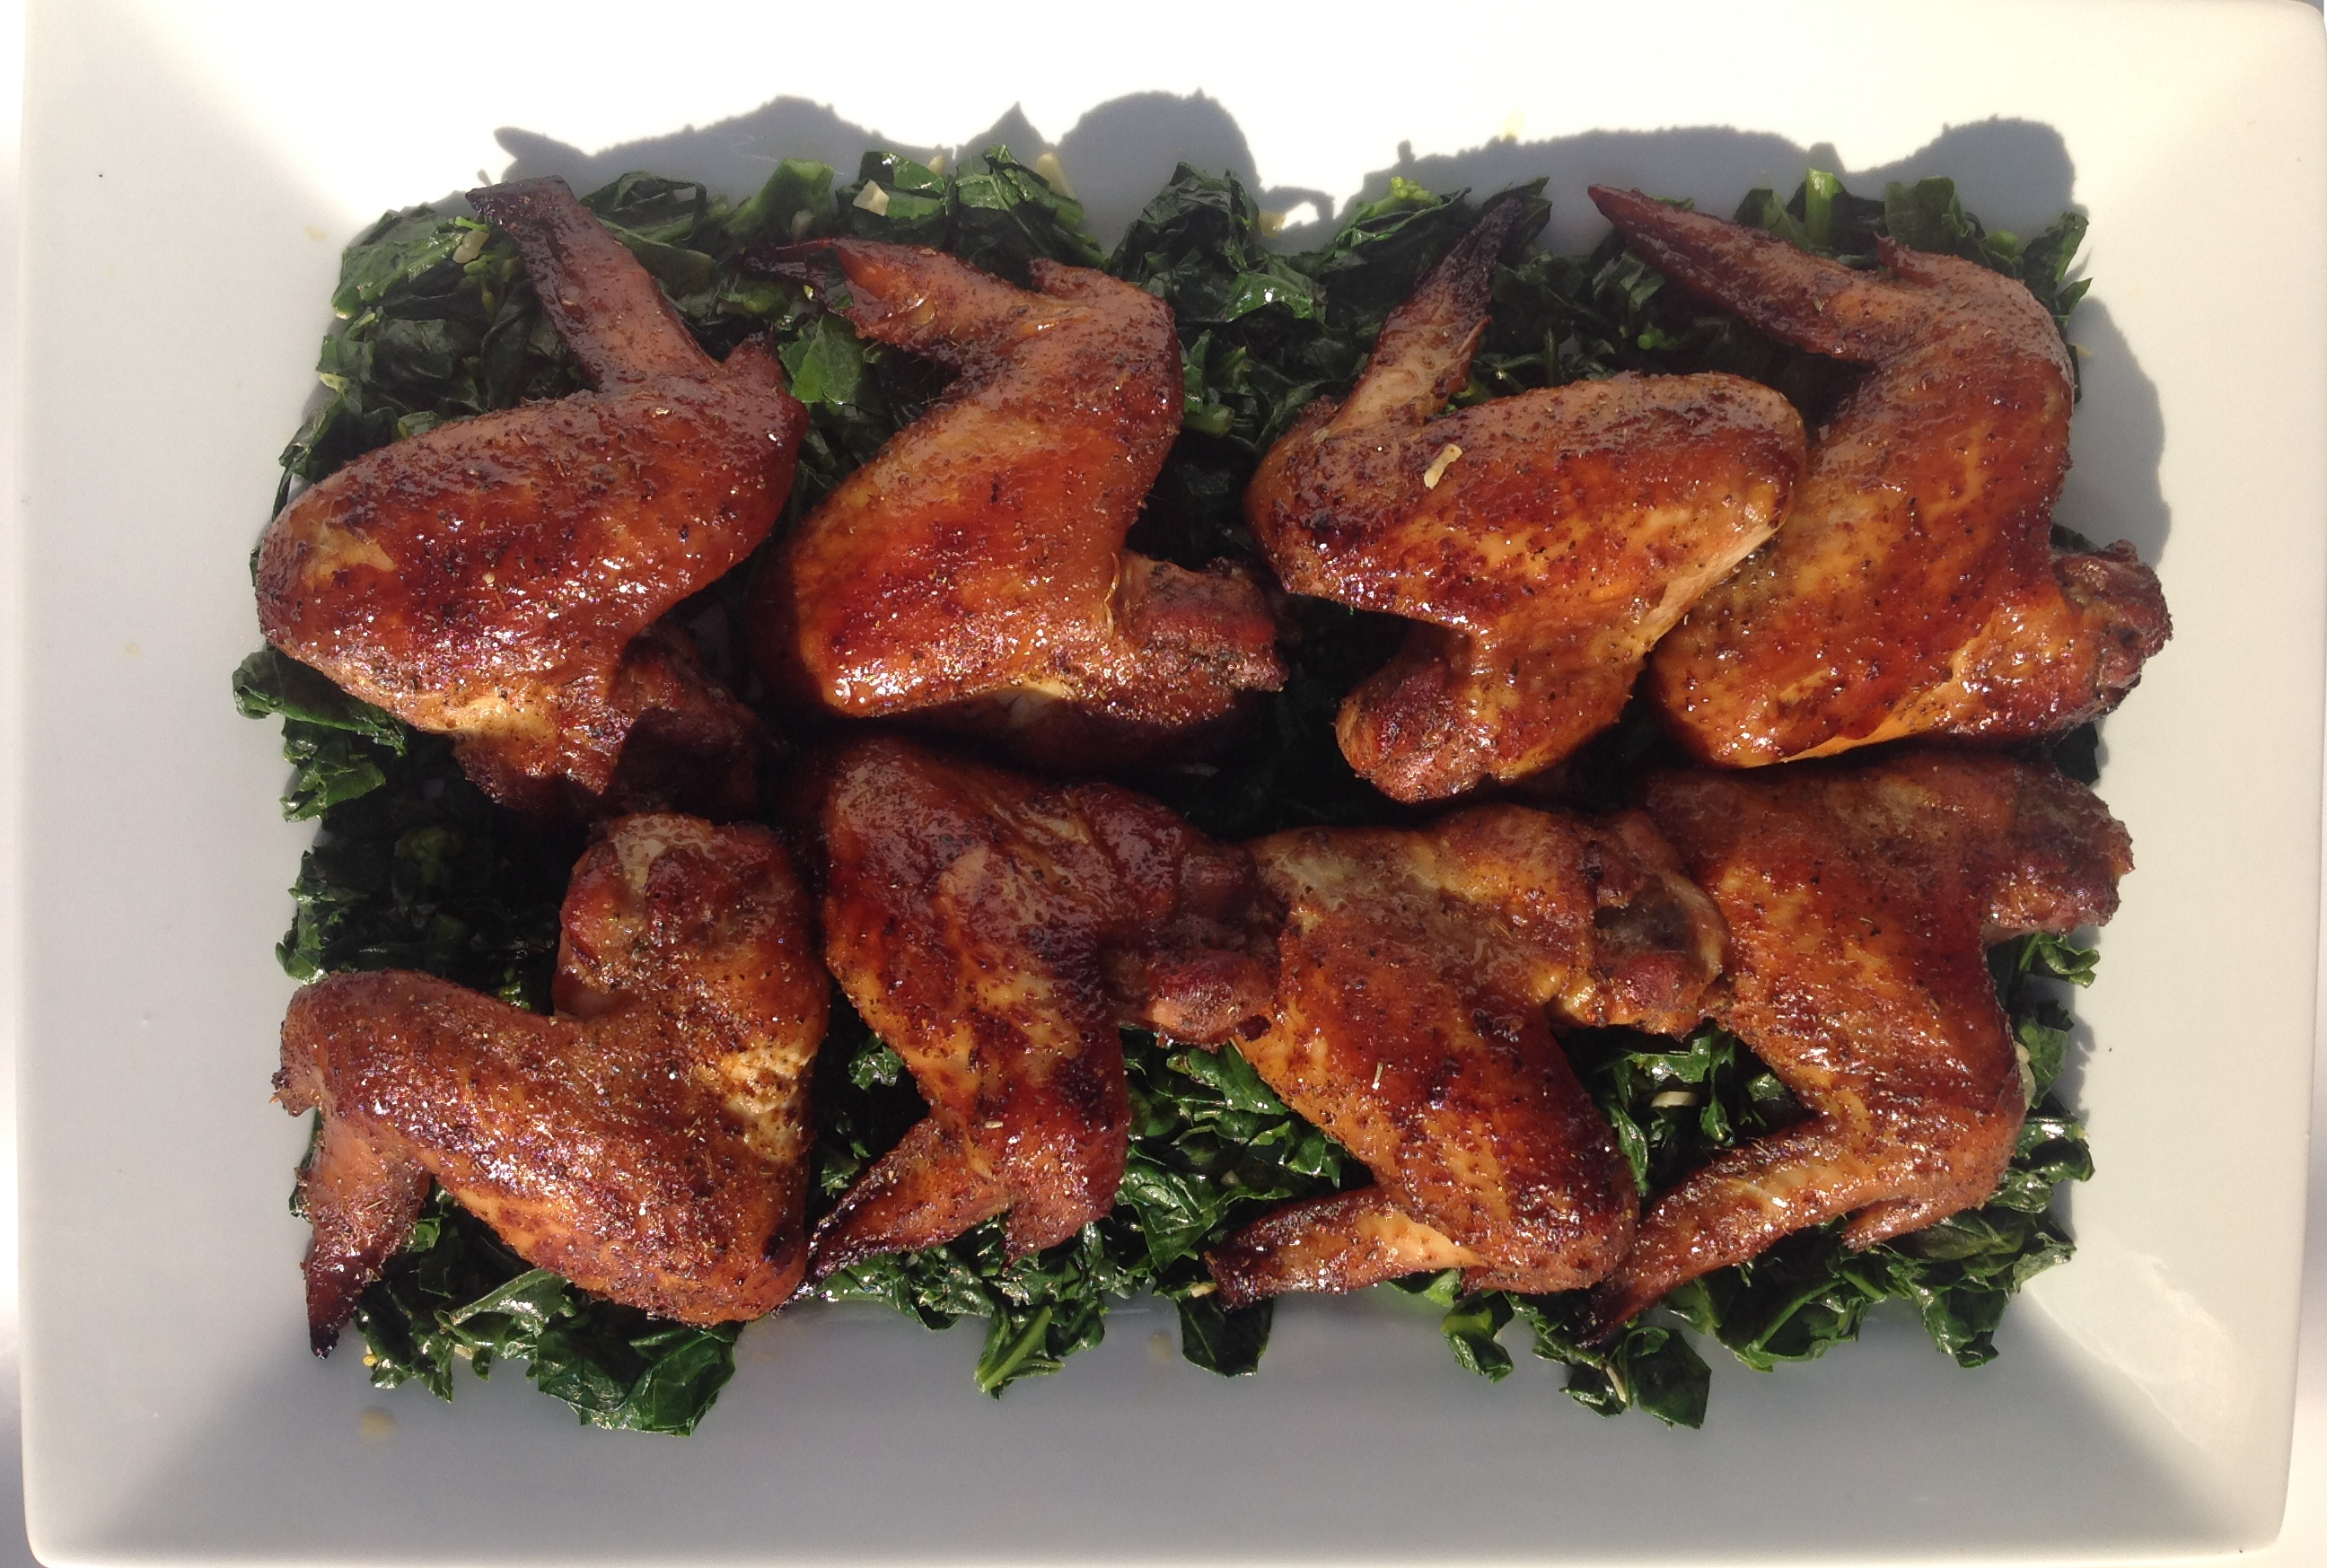 Picture of Roasted Pork Rib, Chicken Drum Sticks or Wings